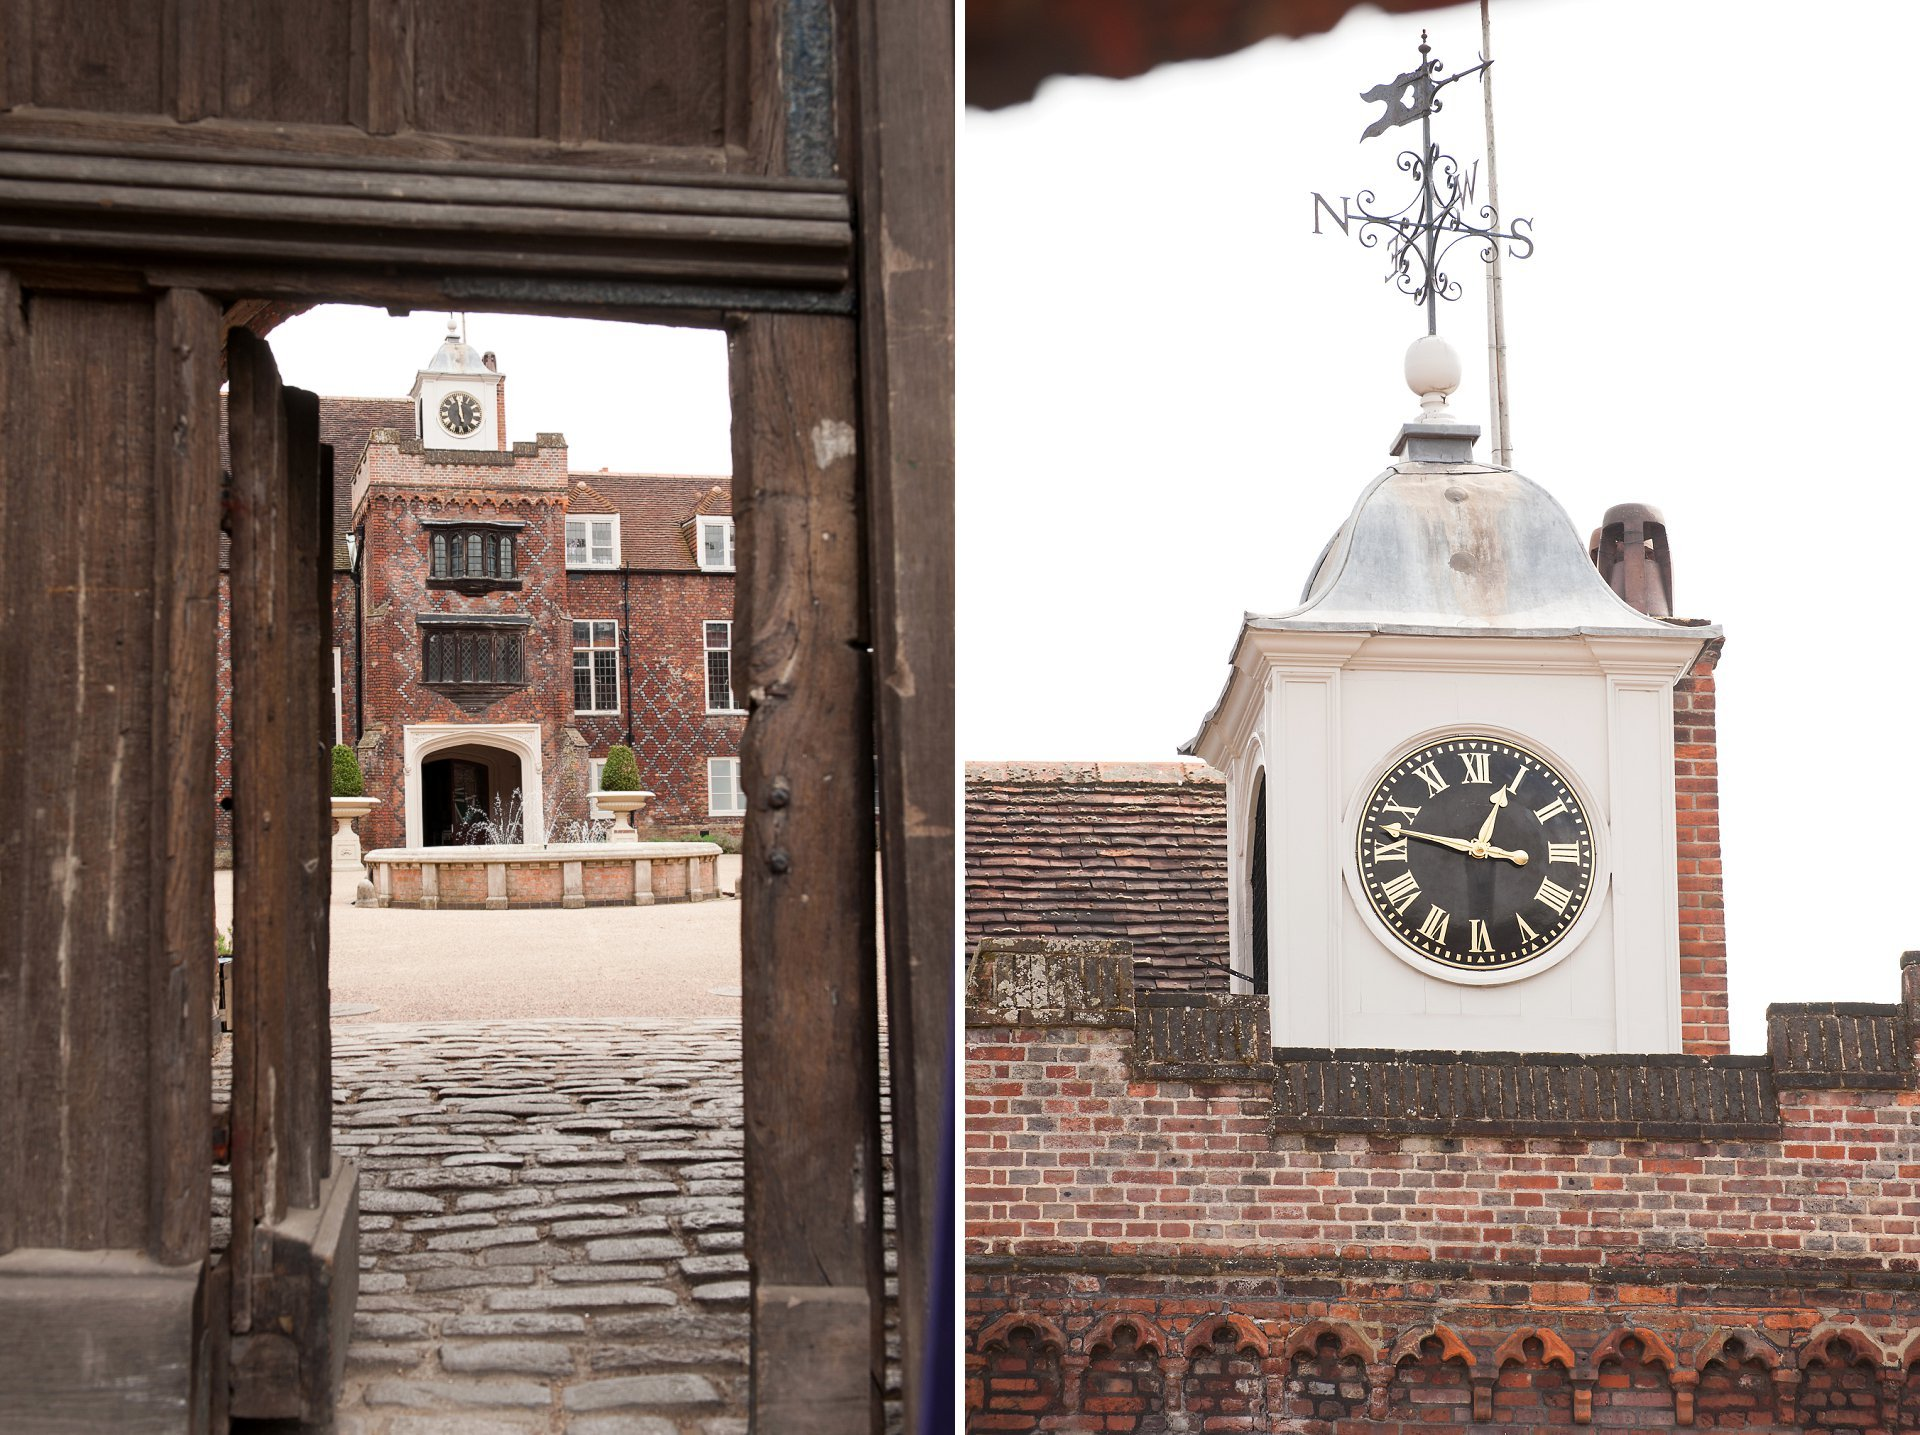 Grade I listed Fulham Palace's ourtyard and clock tower